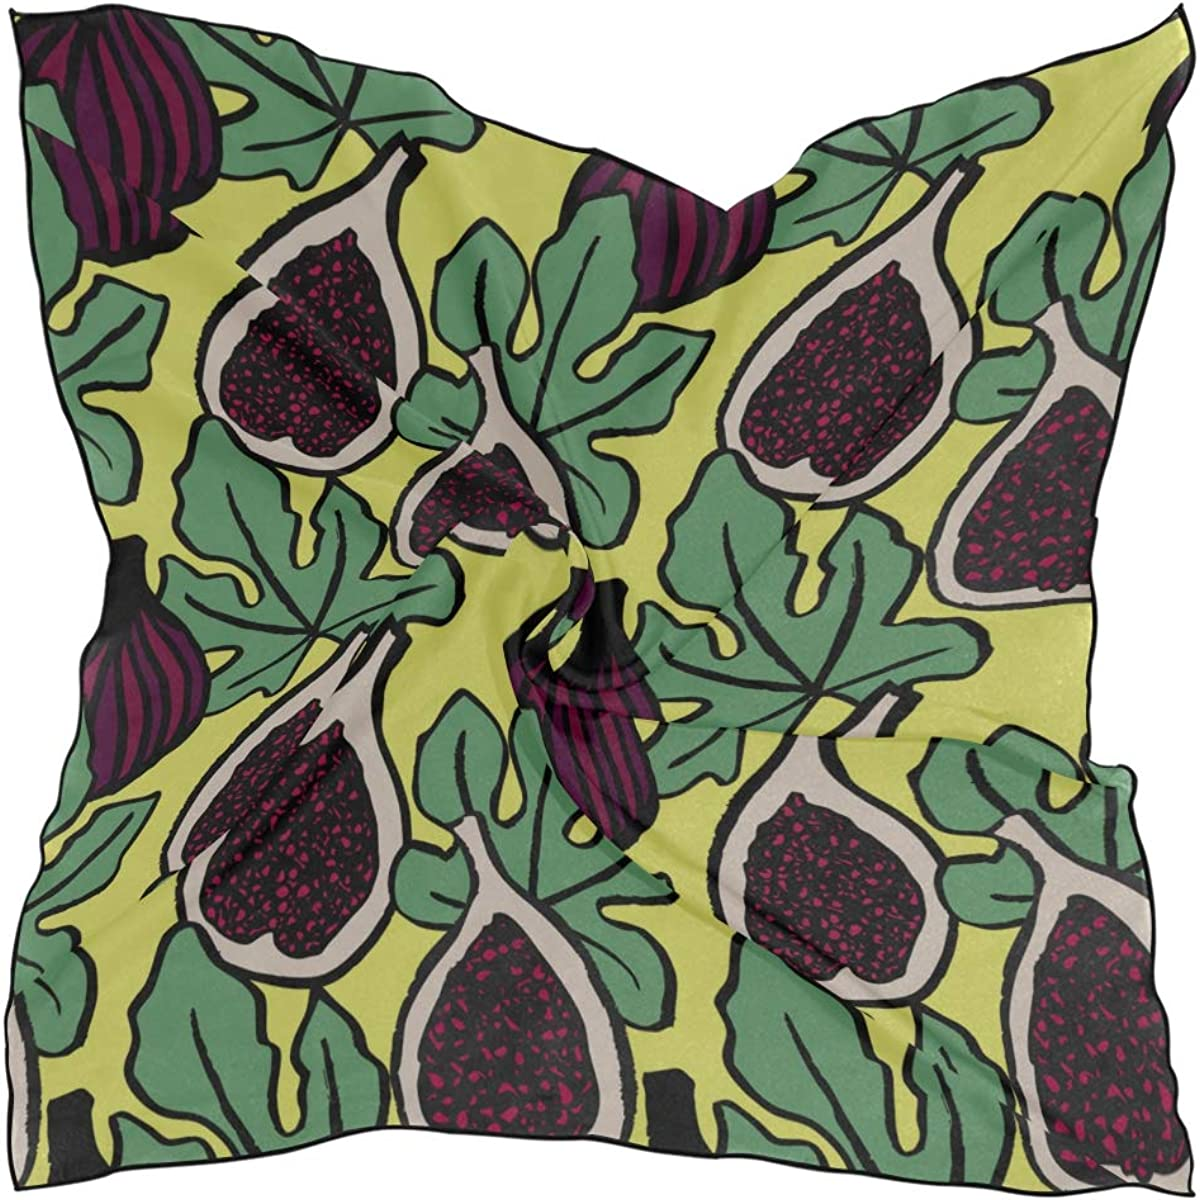 Women's Soft Polyester Silk Square Scarf Vintage Style Fruit Cute Fig Leaf Fashion Print Head Hair Scarf Neckerchief Scarves Accessory 23.6x23.6 Inch Multiple Ways Of Wearing Daily Decor